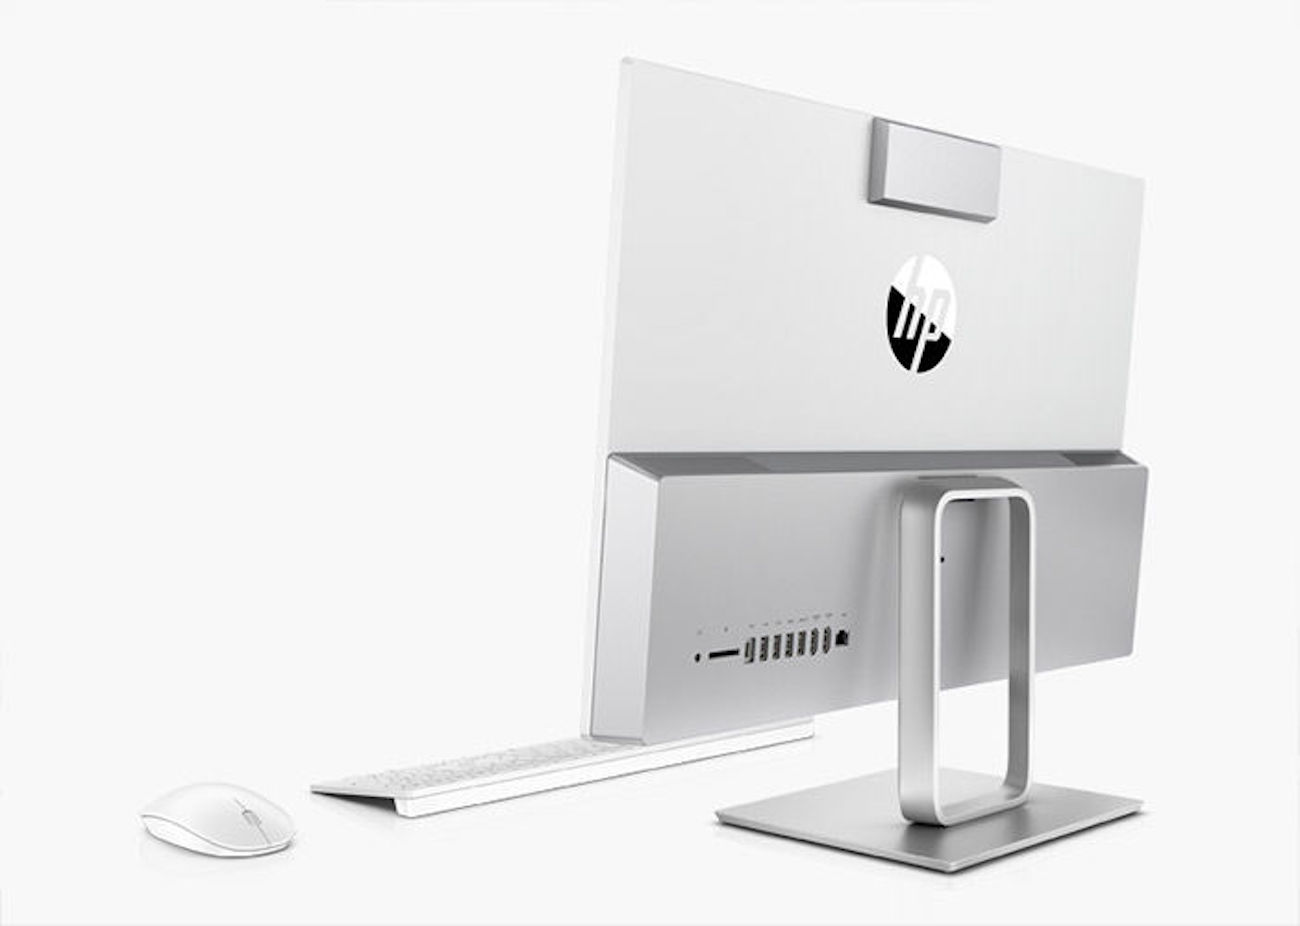 HP Pavilion All-in-One Desktop Computer